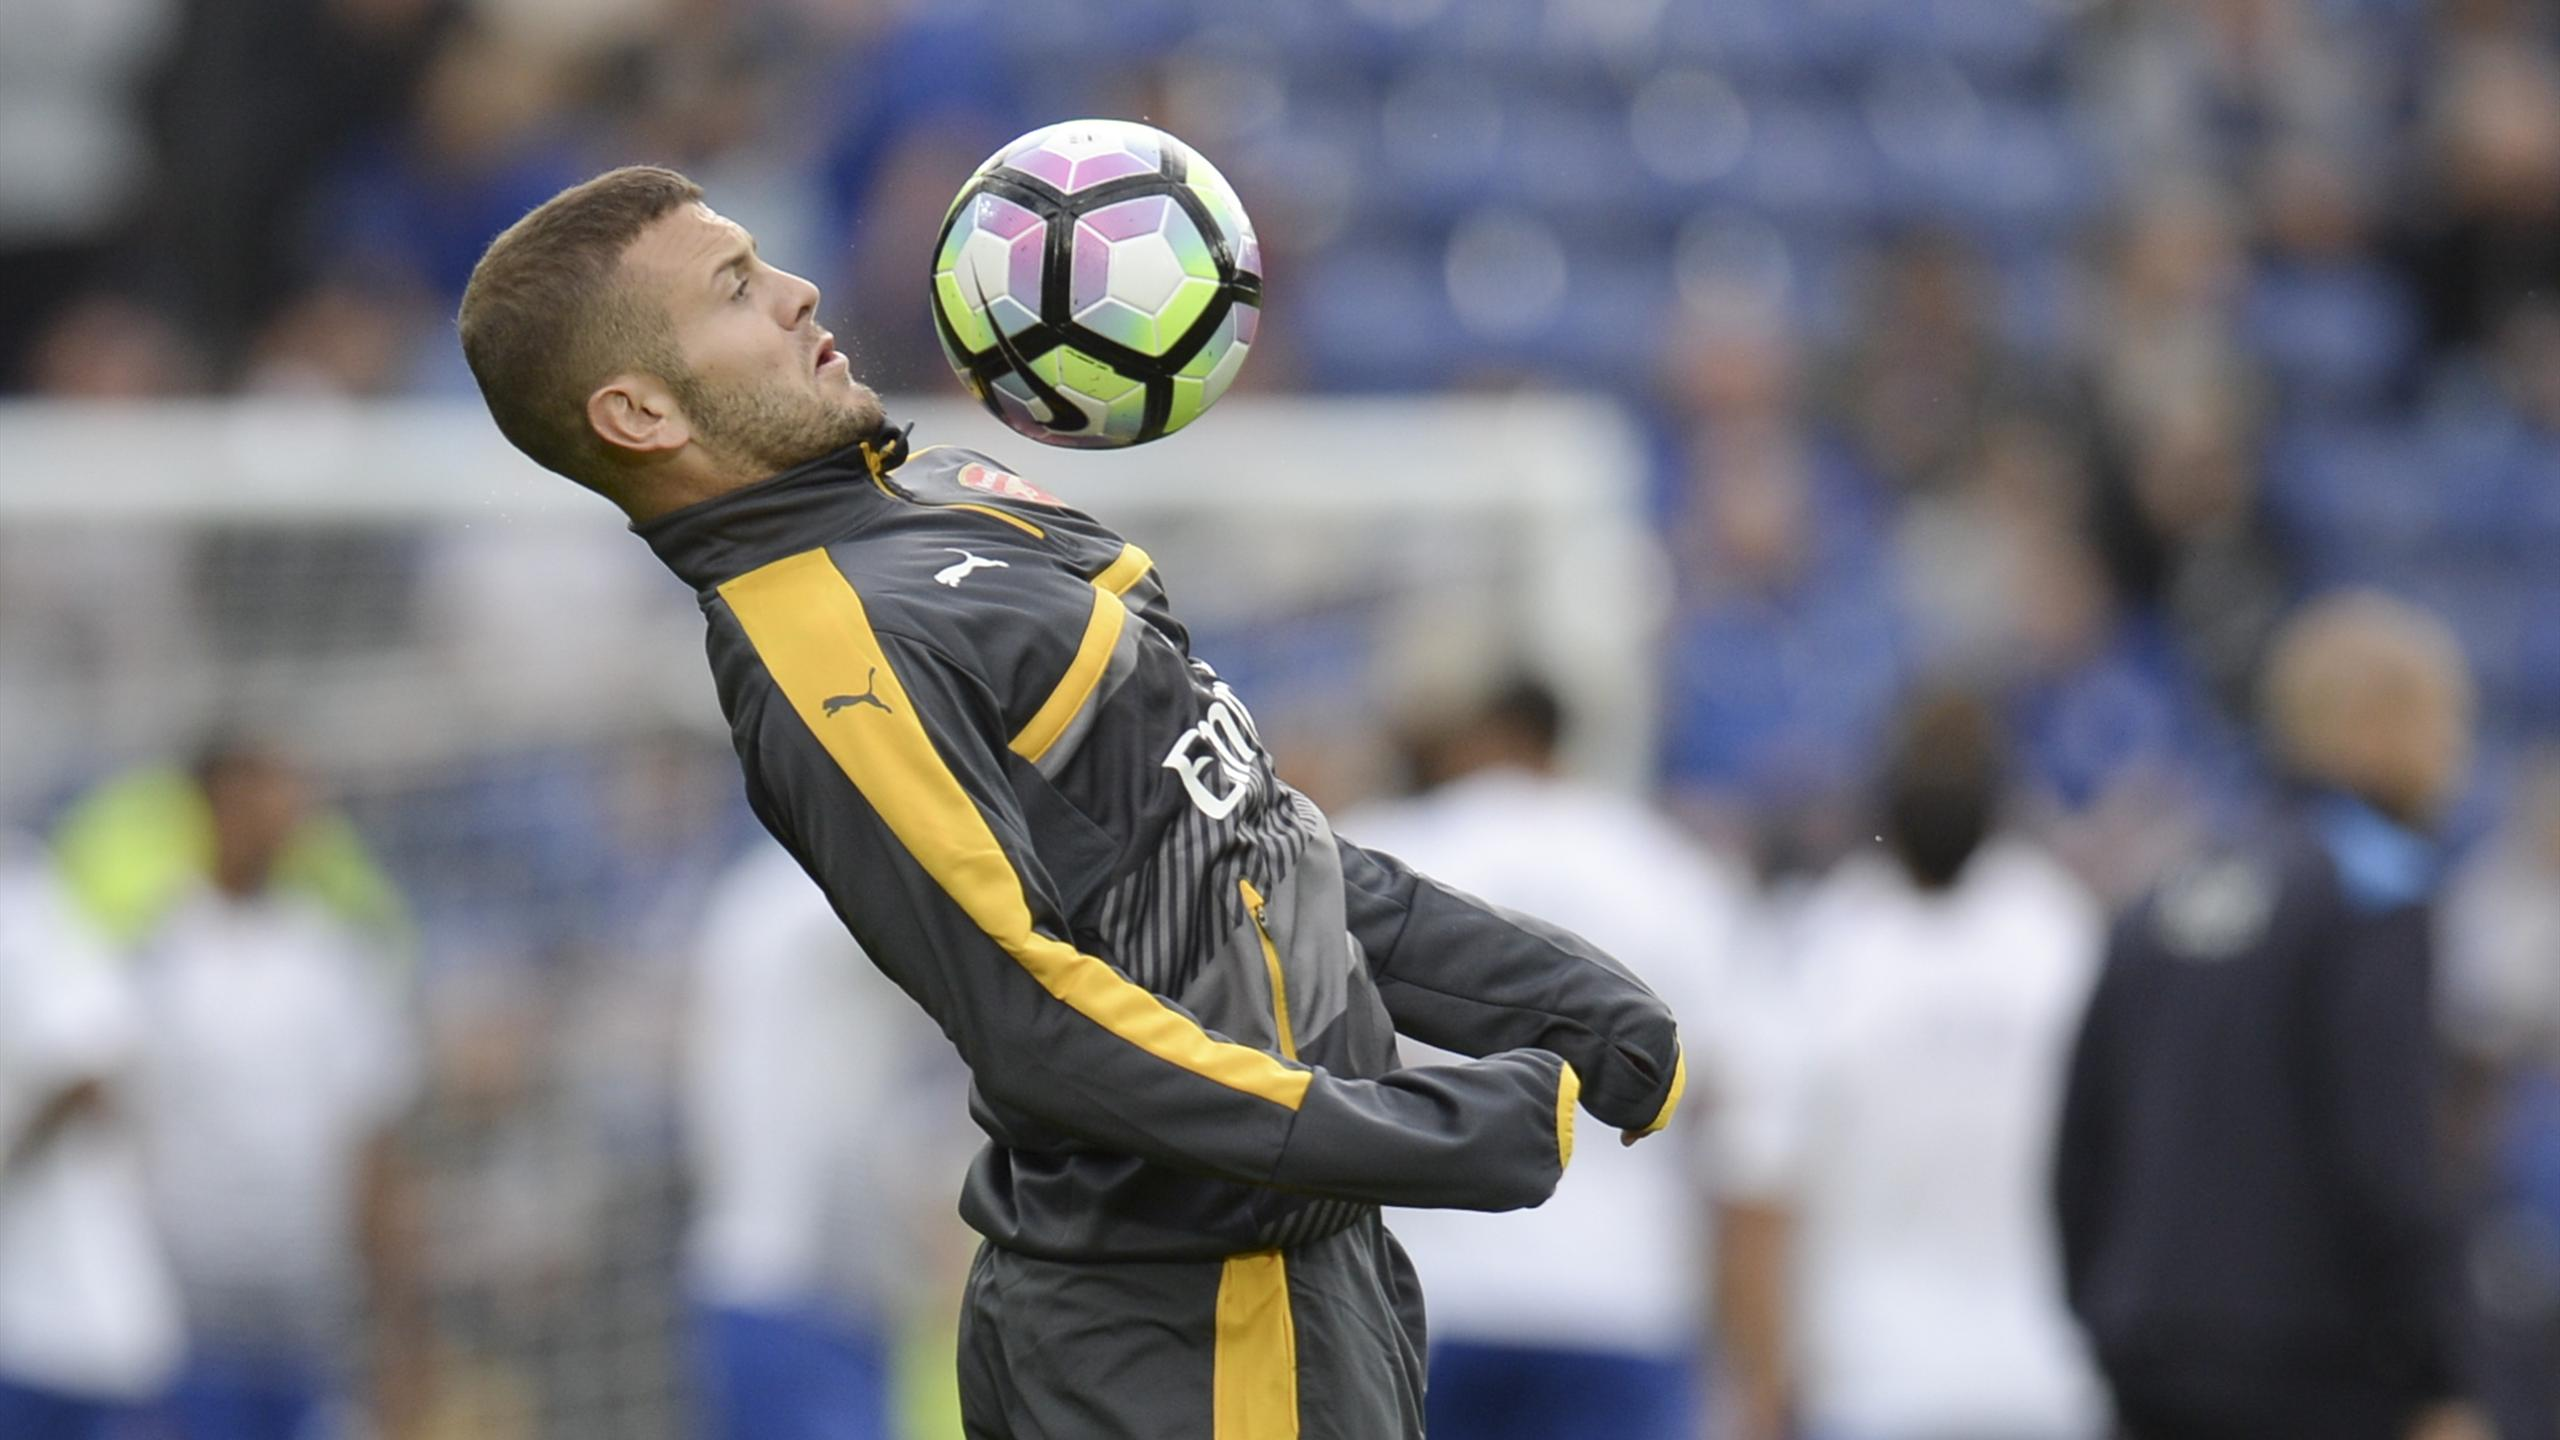 Jack Wilshere warms up